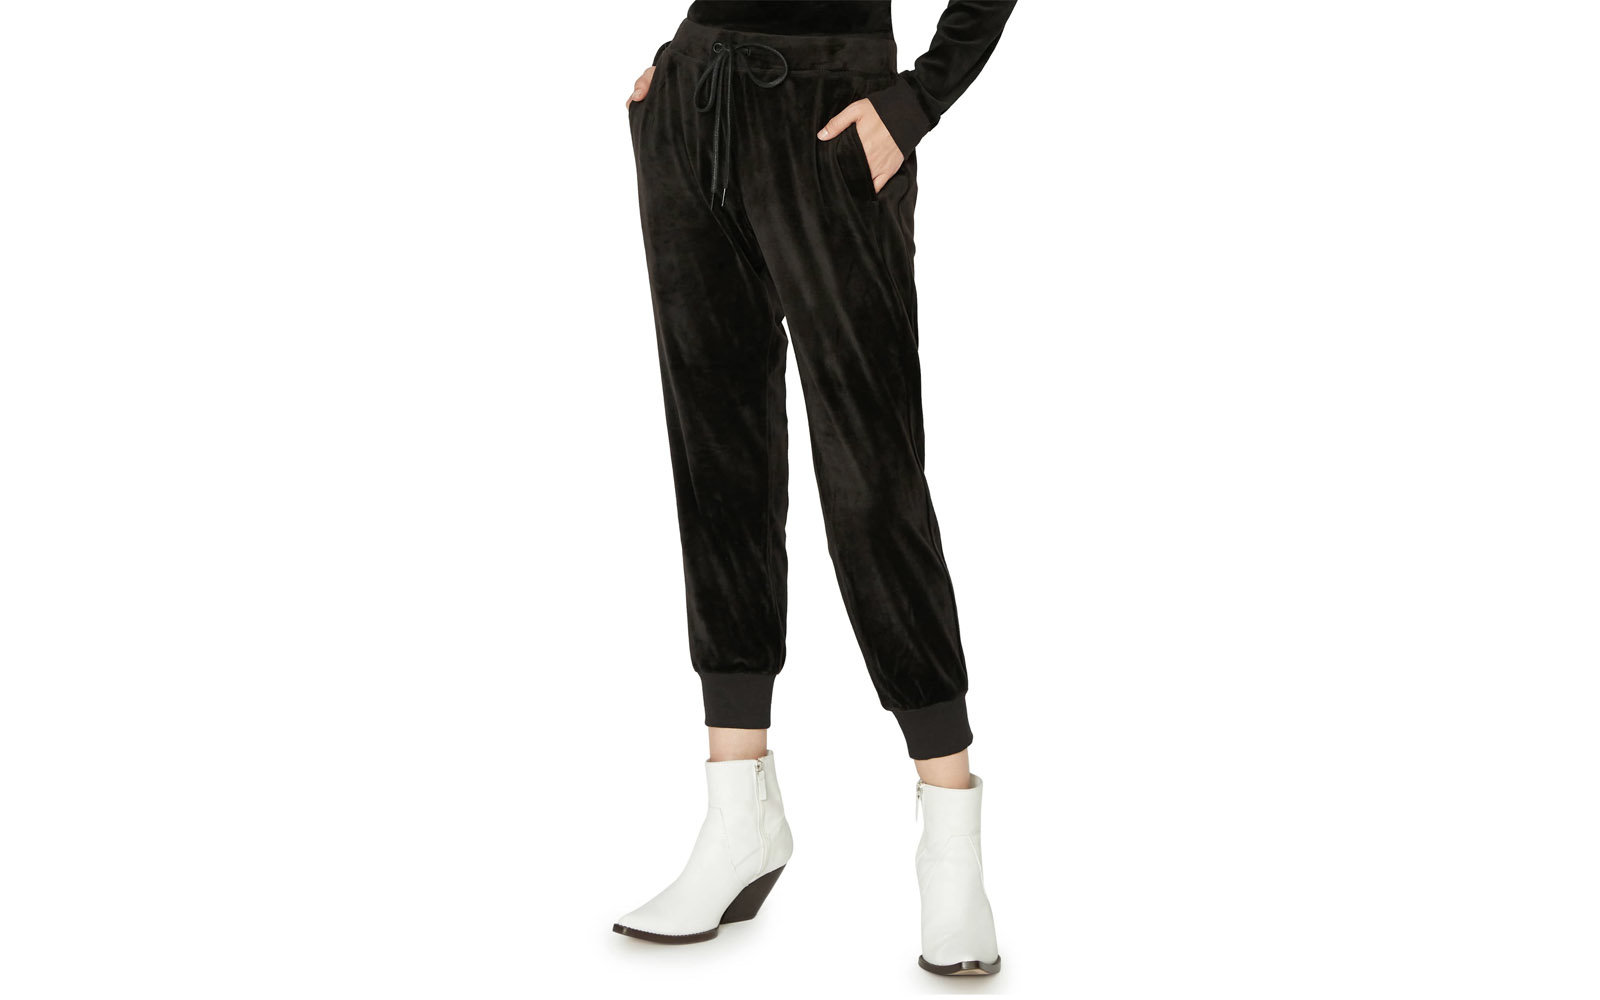 523f9768326 The Best Stretch Pants for a Comfortable Flight